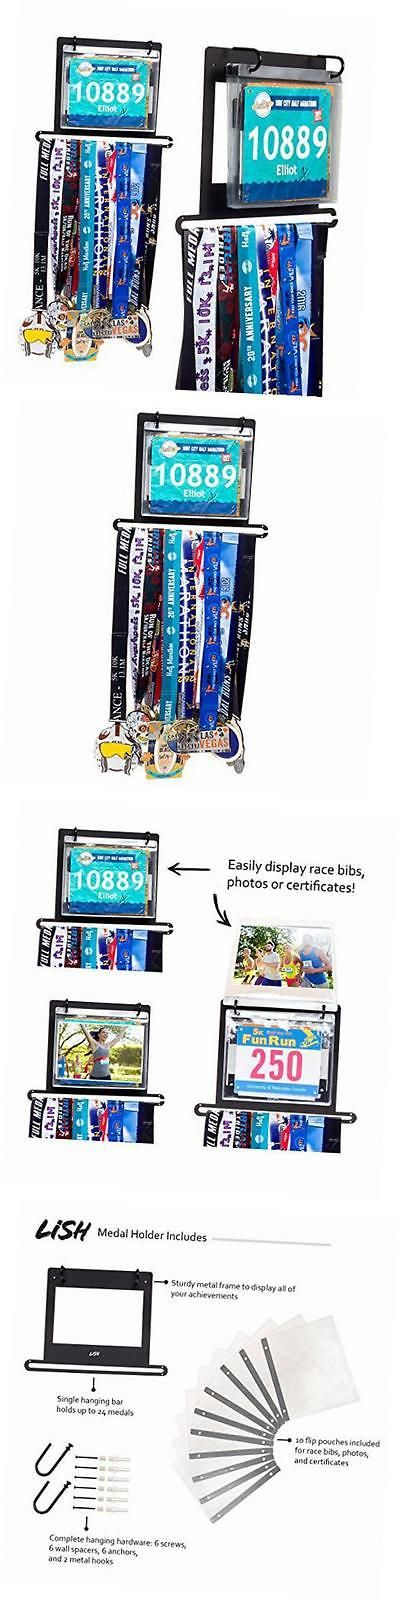 Other Fitness Clothing 158920: Race Bib And Marathon Medal Display - Wall Mounted Runners Medal Holder W 10 -> BUY IT NOW ONLY: $48.64 on eBay!